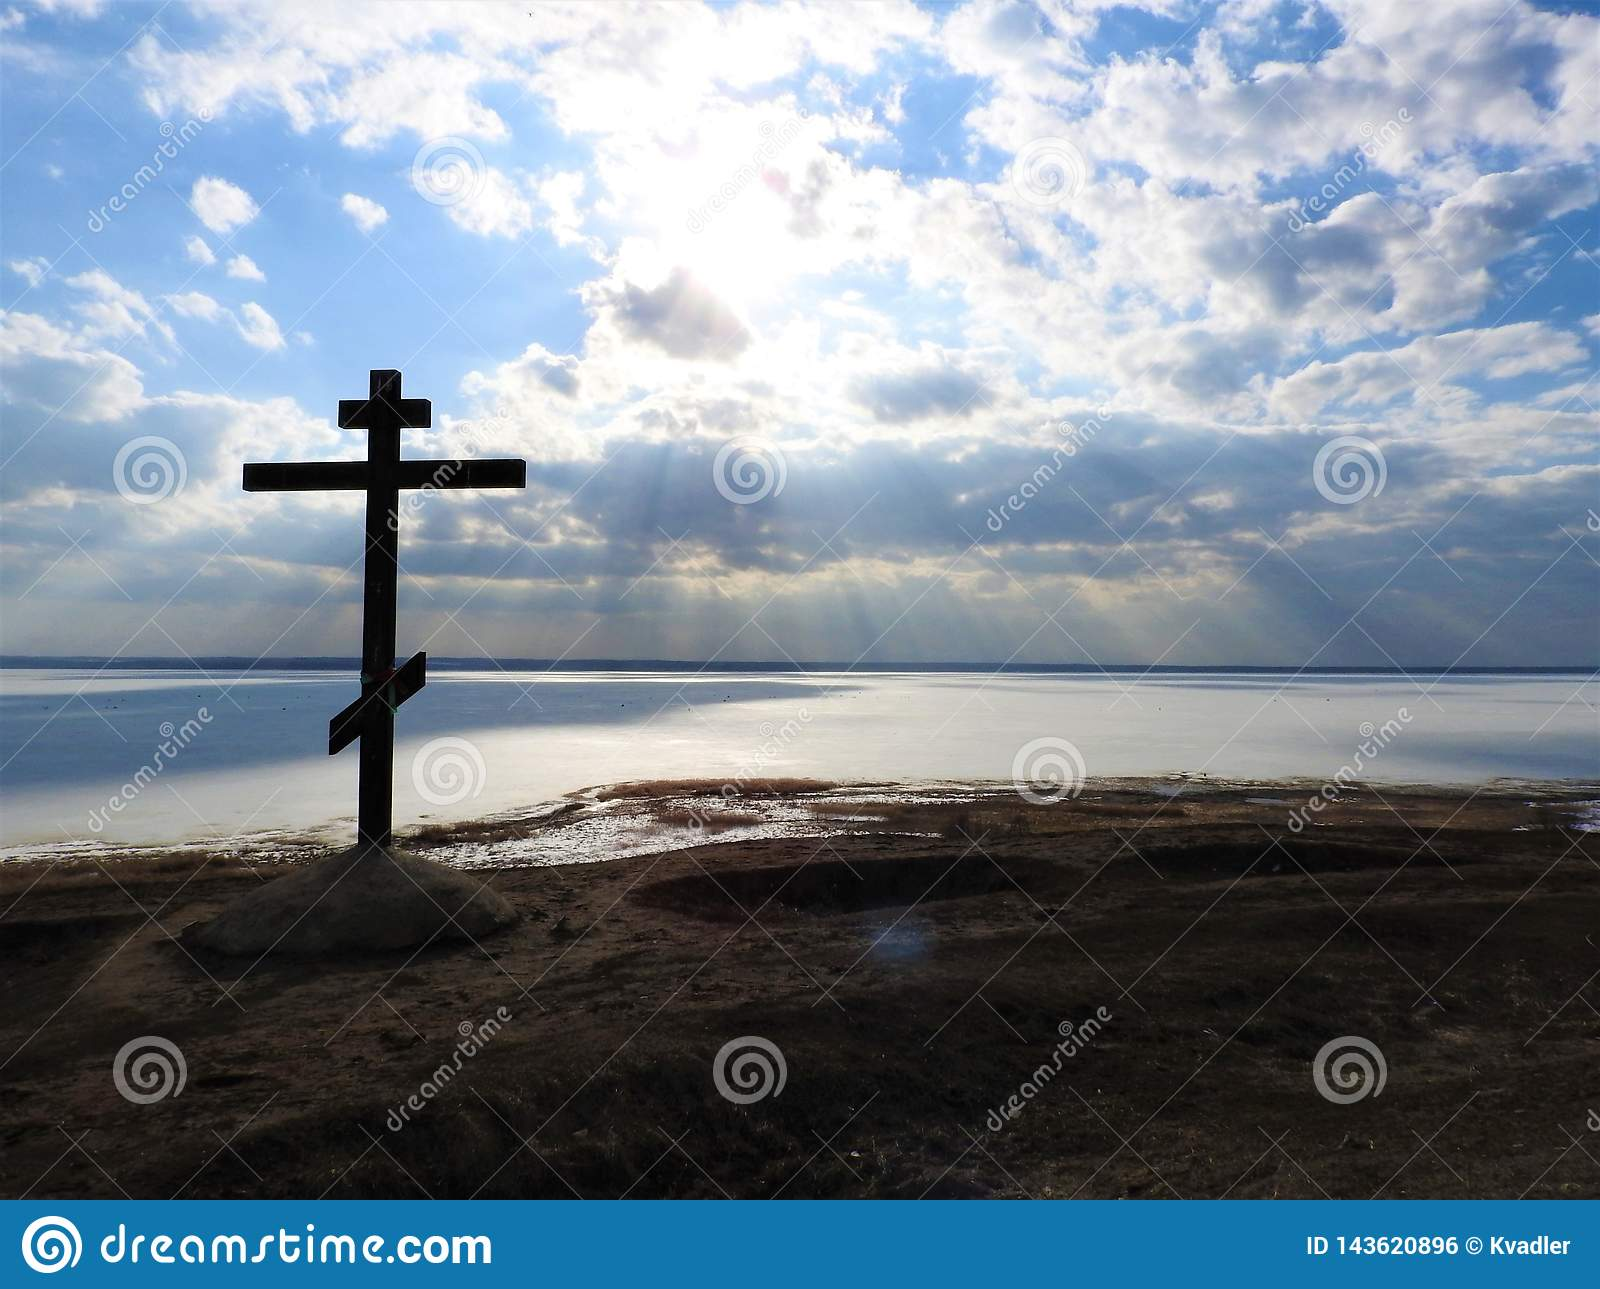 Alexandrov mountain in Pereslavl, the cross and a fabulous view of the lake in the ice in winter, the blue sky clouds